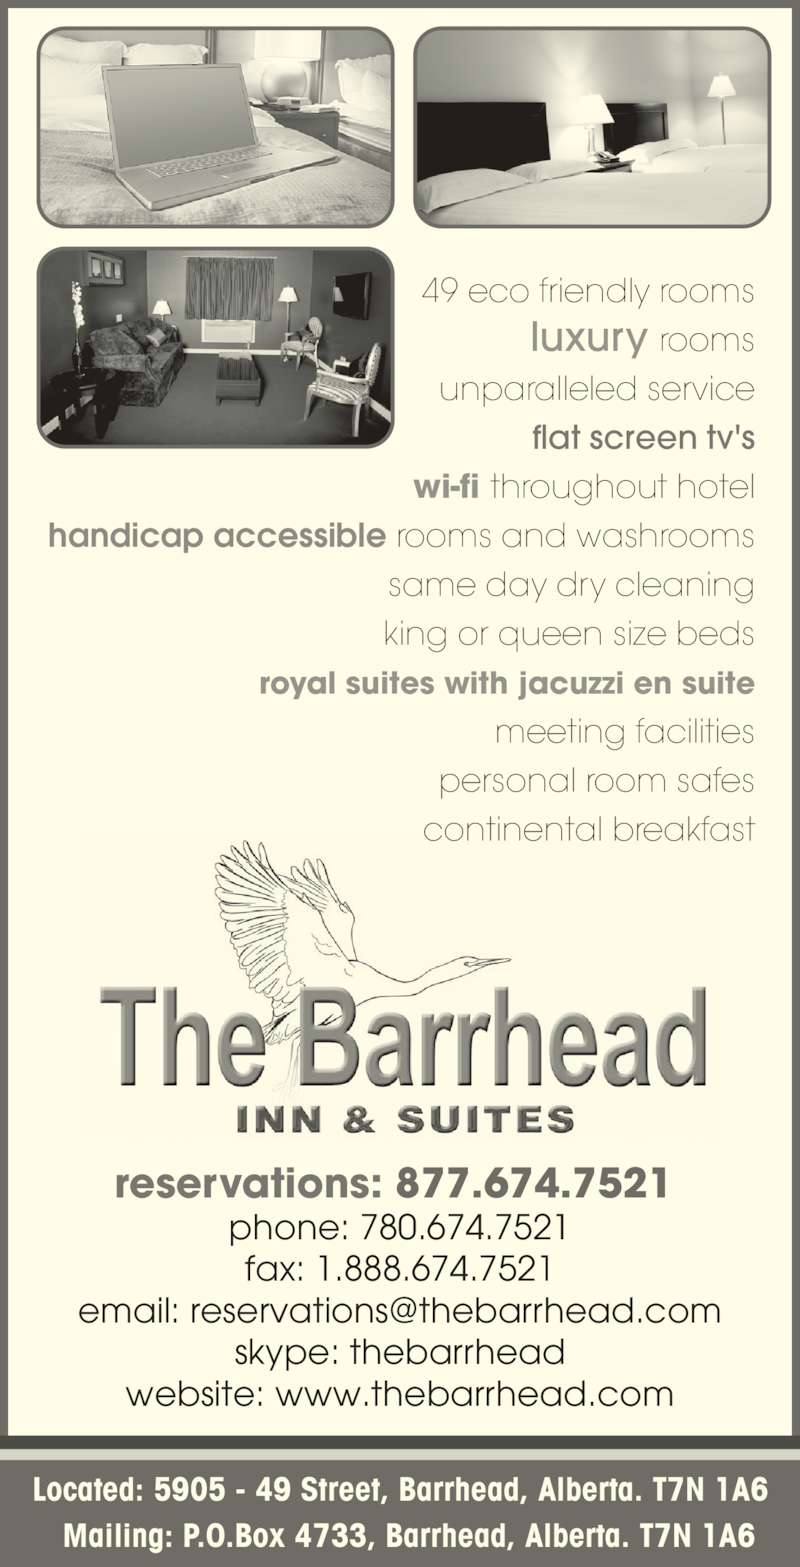 The Barrhead Inn & Suites (780-674-7521) - Display Ad - king or queen size beds royal suites with jacuzzi en suite meeting facilities personal room safes continental breakfast reservations: 877.674.7521wi-fithroughout hotel  |  handic p accessibleooms nd washrooms Located: 5905 - 49 Street, Barrhead, Alberta. T7N 1A6     Mailing: P.O.Box 4733, Barrhead, Alberta. T7N 1A6 reservations: 877.674.7521  phone: 780.674.7521 fax: 1.888.674.7521 skype: thebarrhead website: www.thebarrhead.com 49 eco friendly rooms luxury rooms same day dry cleaning unparalleled service flat screen tv's wi-fi throughout hotel handicap accessible rooms and washrooms